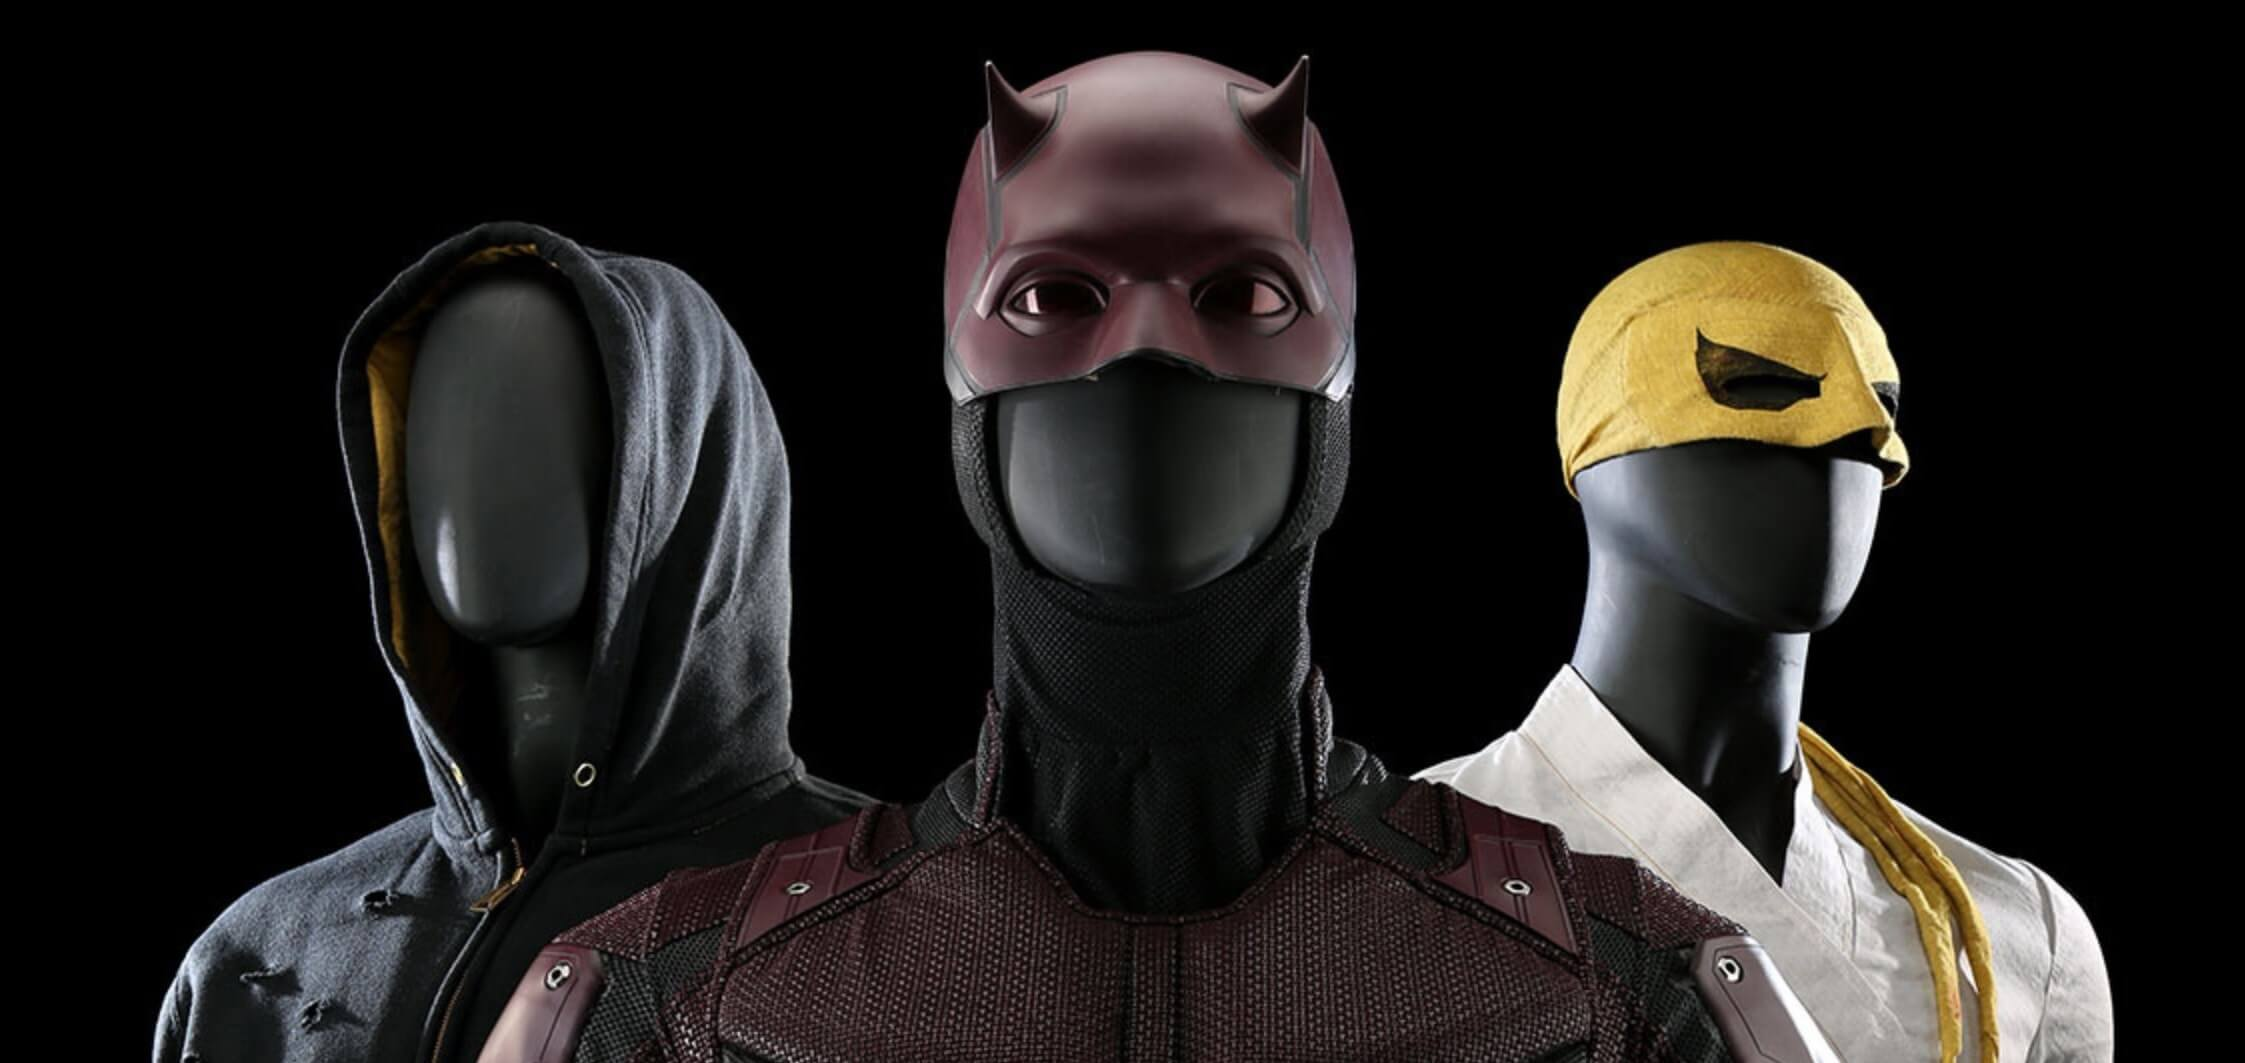 Props from canceled Marvel Netflix shows will be sold in